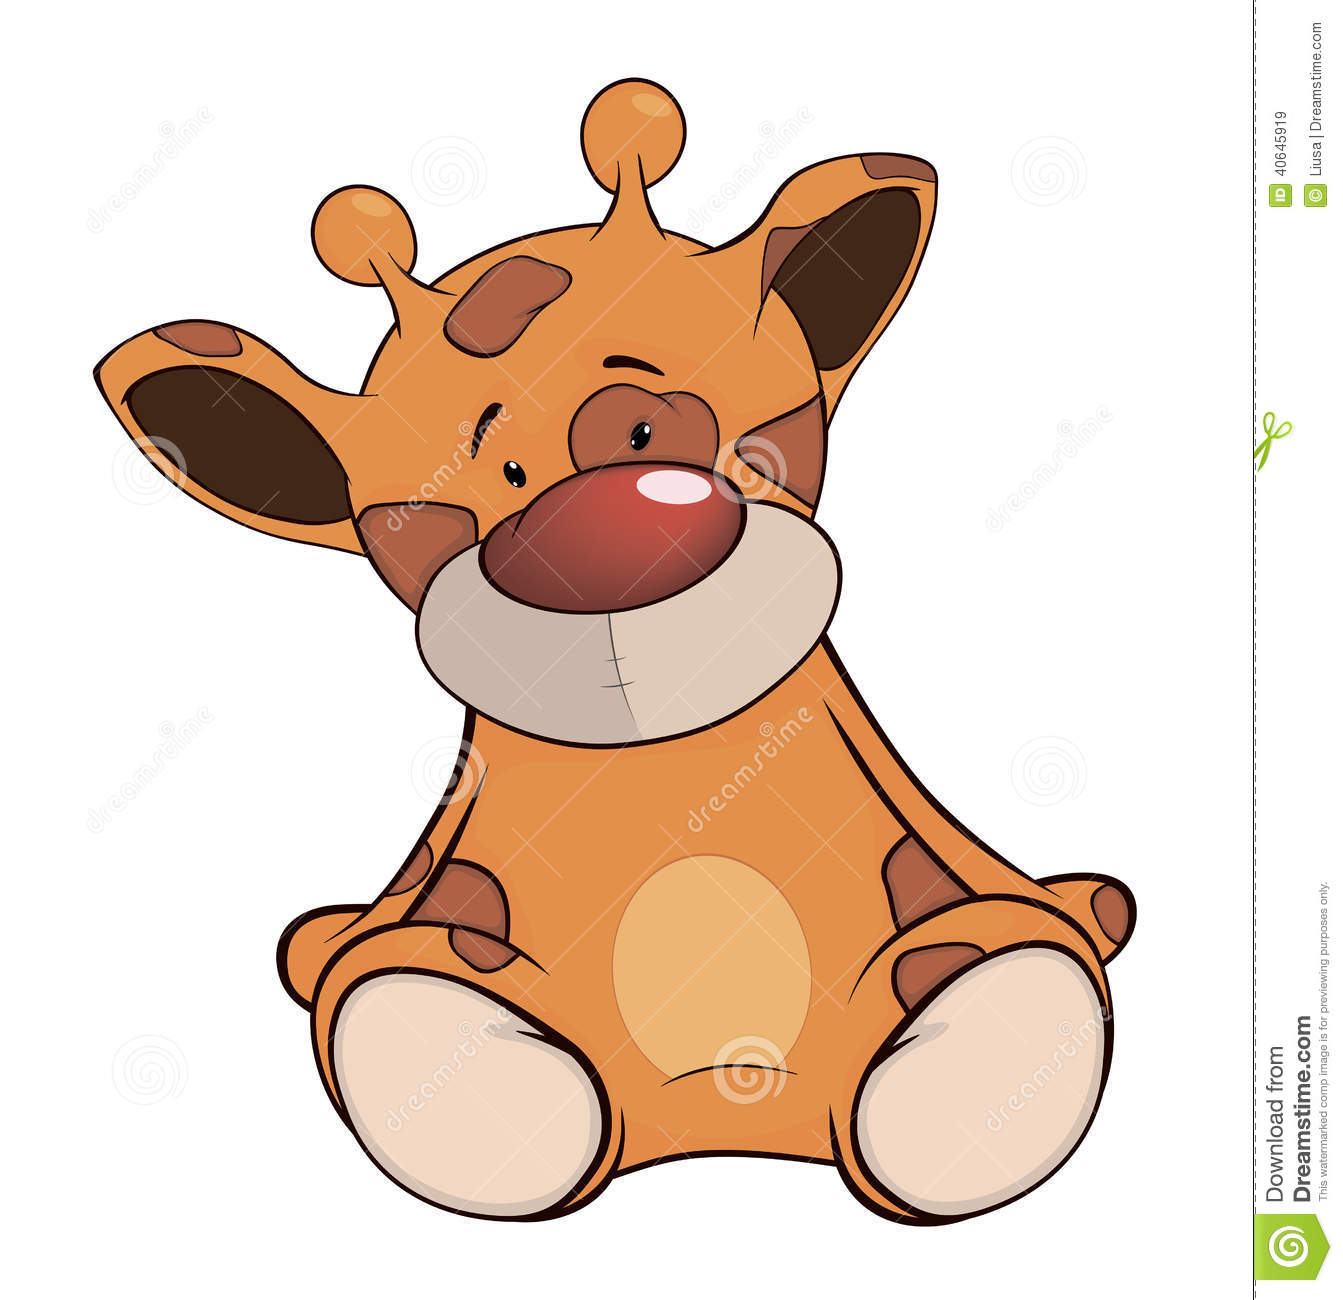 The Stuffed Toy Giraffe Cartoon Stock Vector.